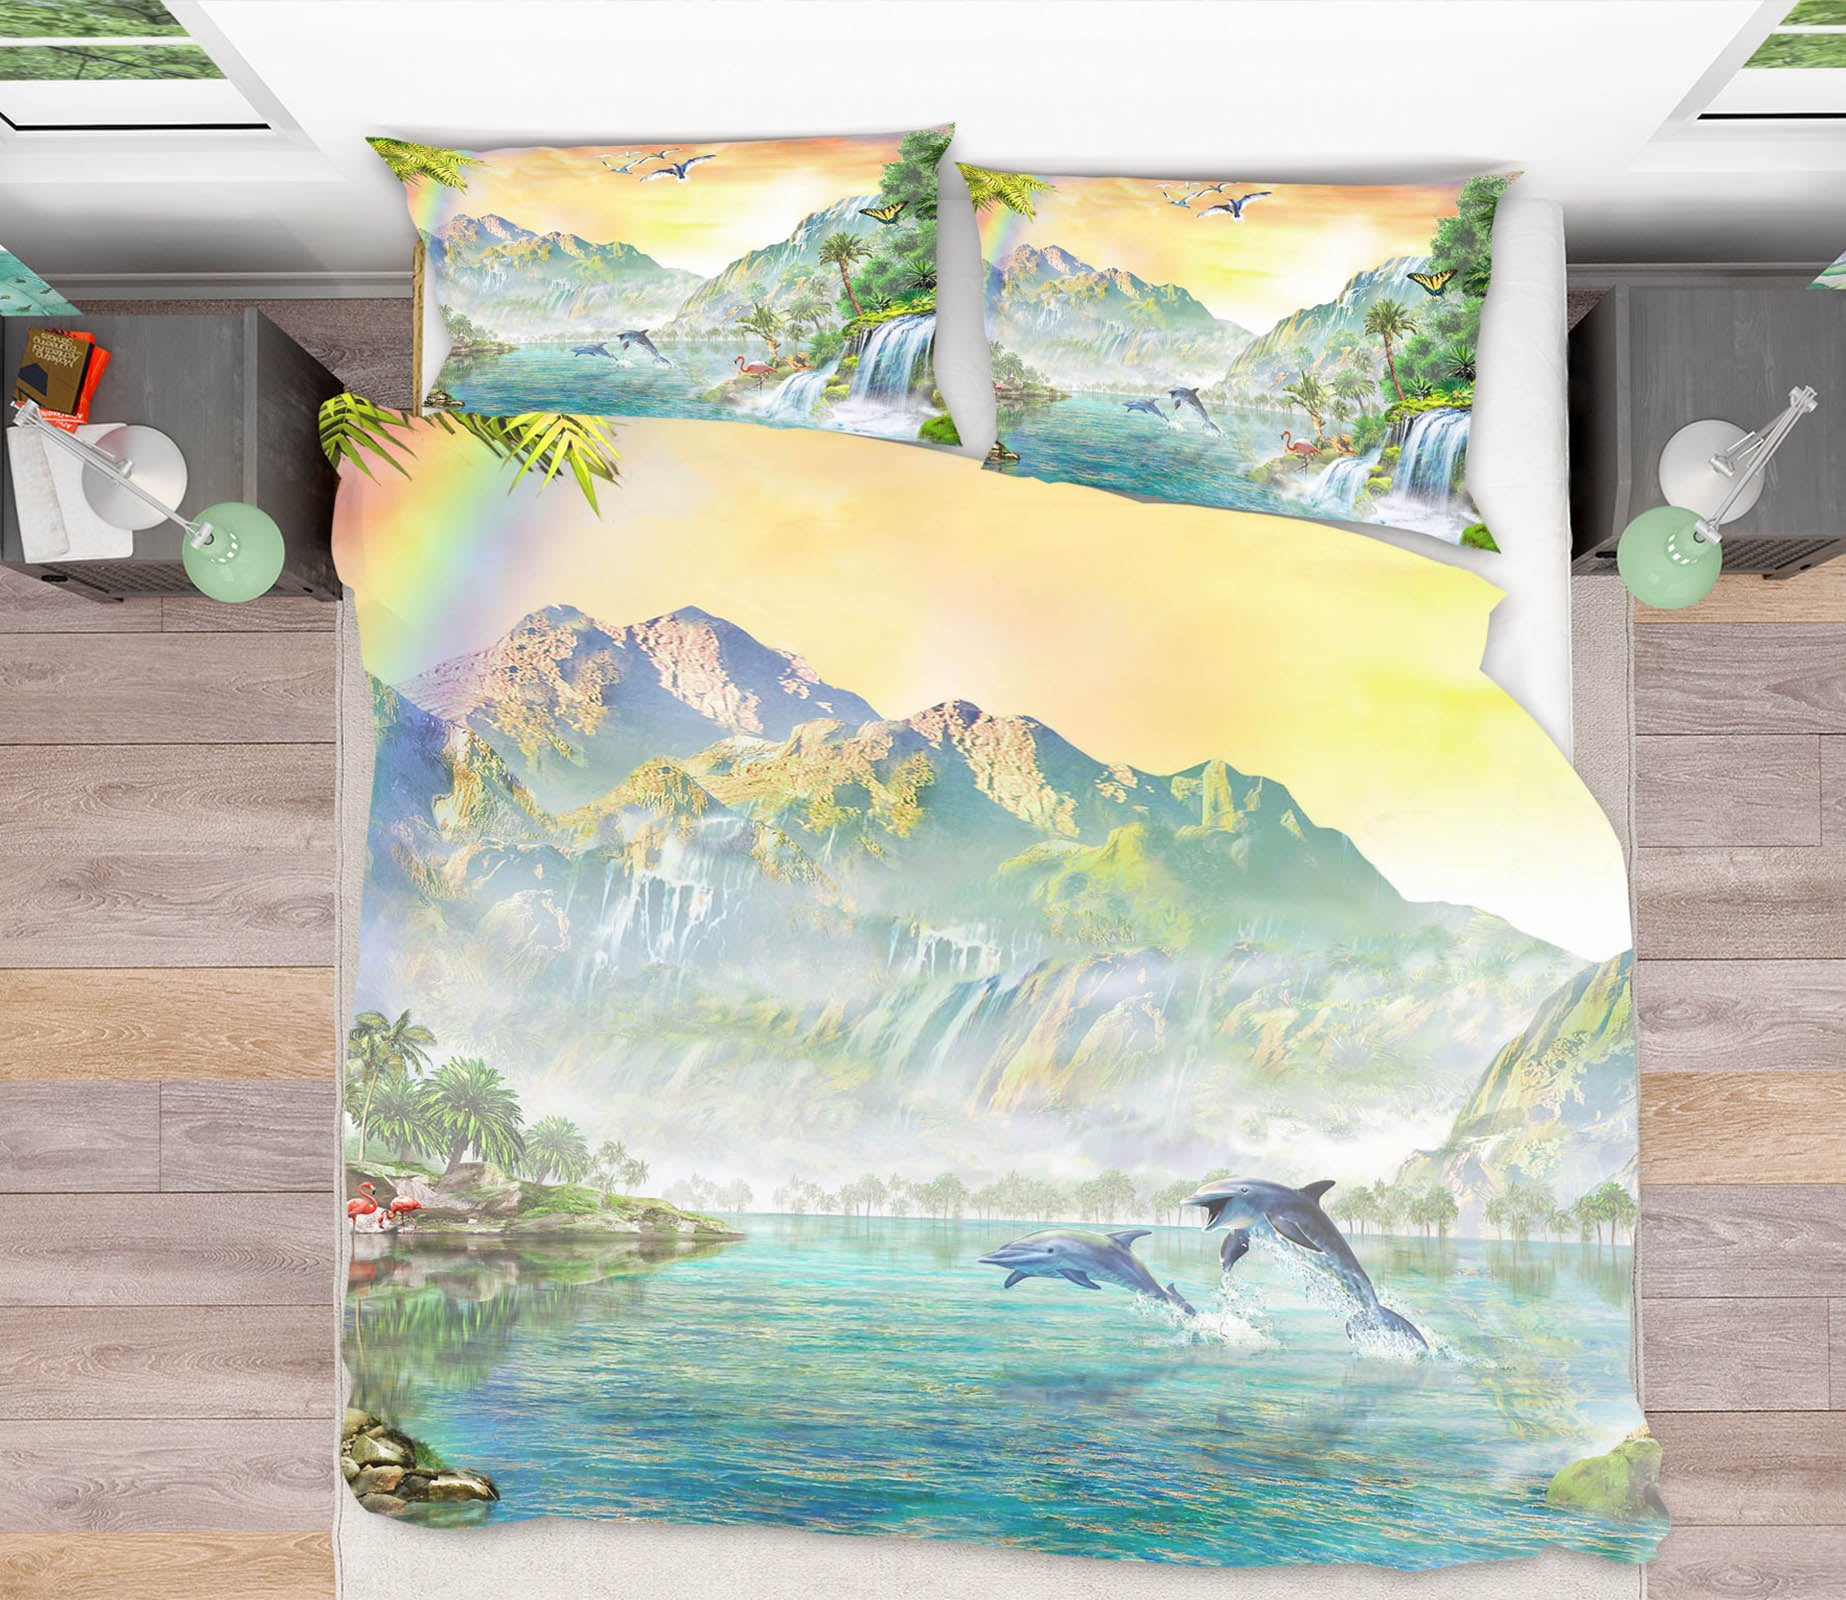 3D Atlantic Dolphins 2038 Adrian Chesterman Bedding Bed Pillowcases Quilt